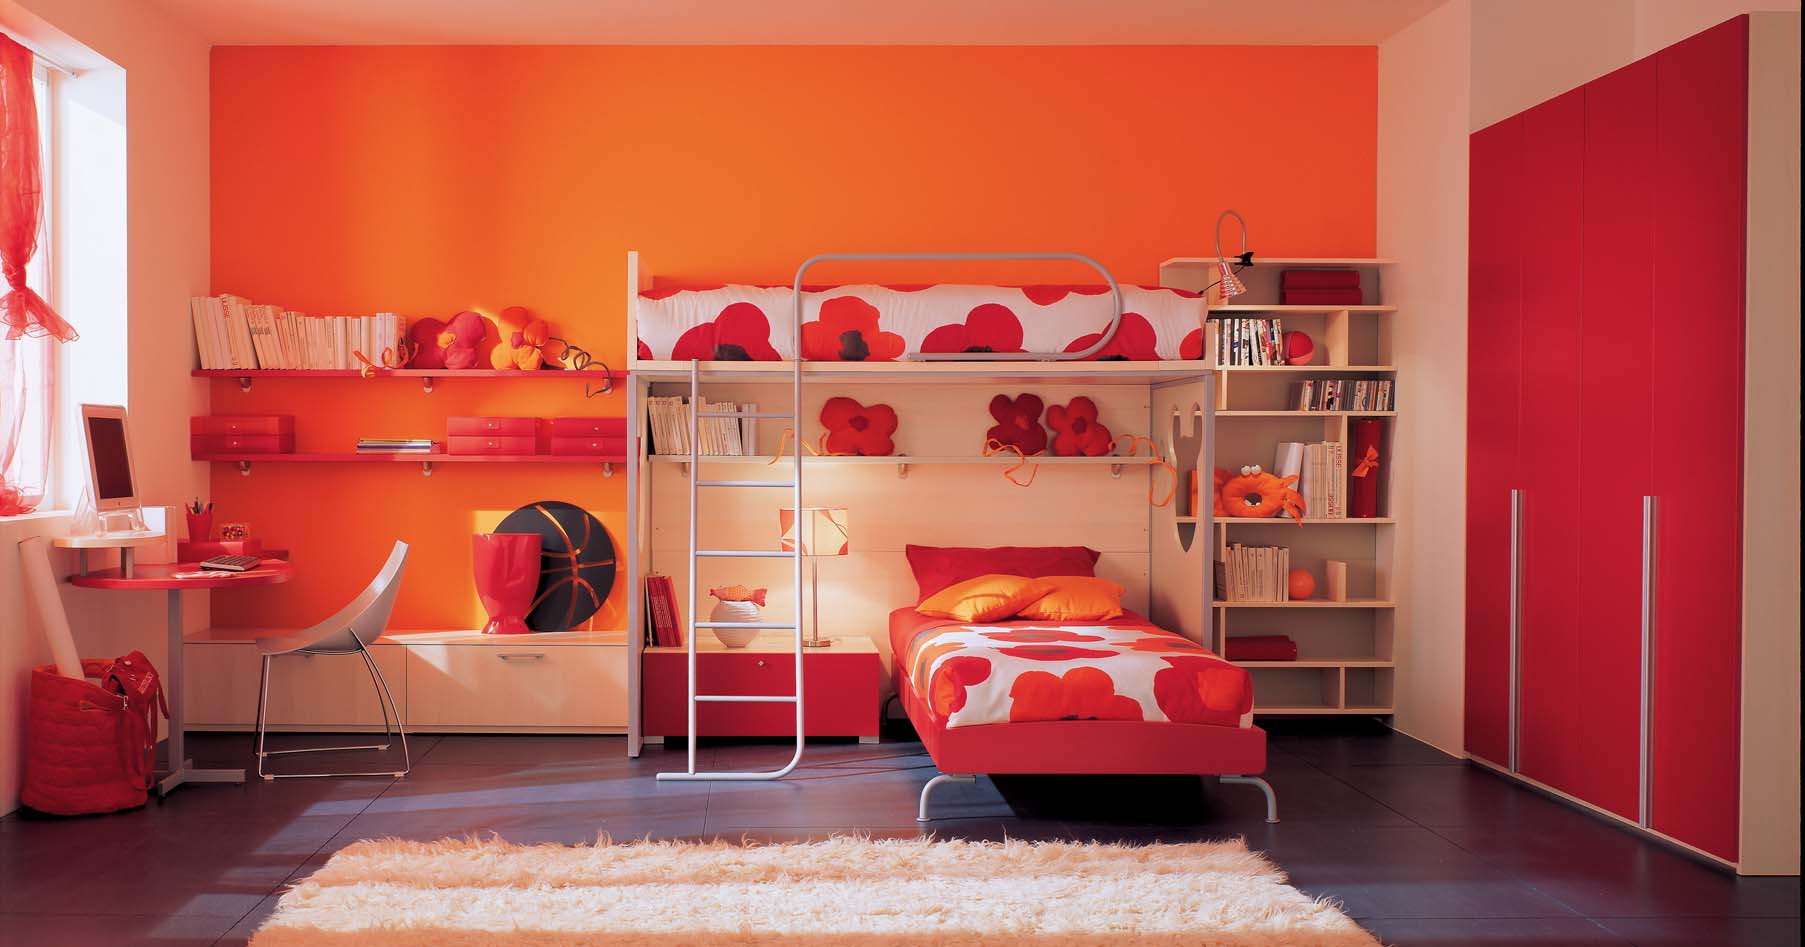 Home » Kids Bedroom Design by BERLONI » Orange n Red kids Bedroom ...